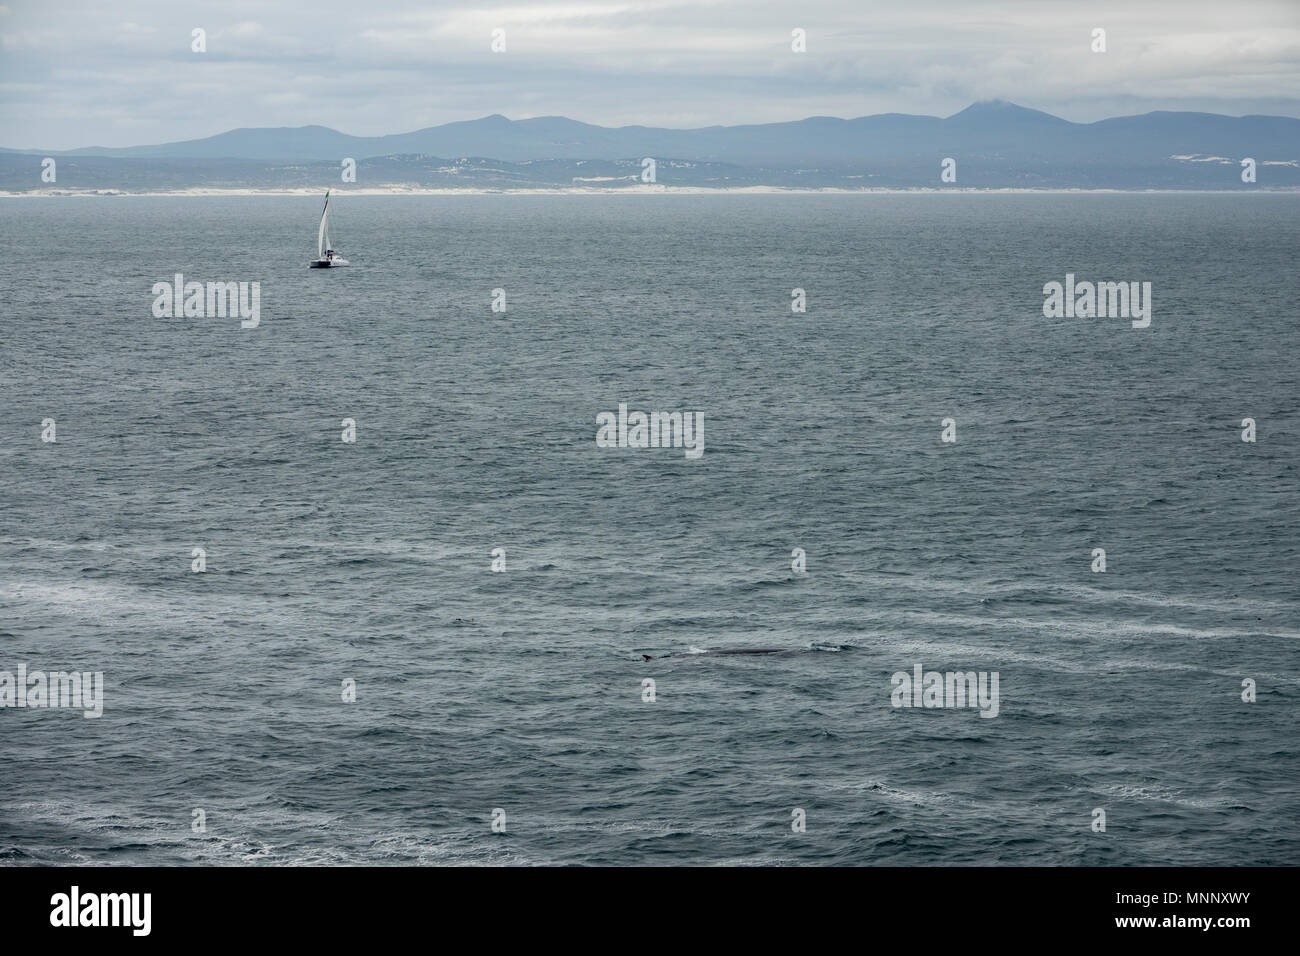 Bryde's Whale on the surface of Walker Bay, with small yacht in the background, Hermanus, South Africa - Stock Image